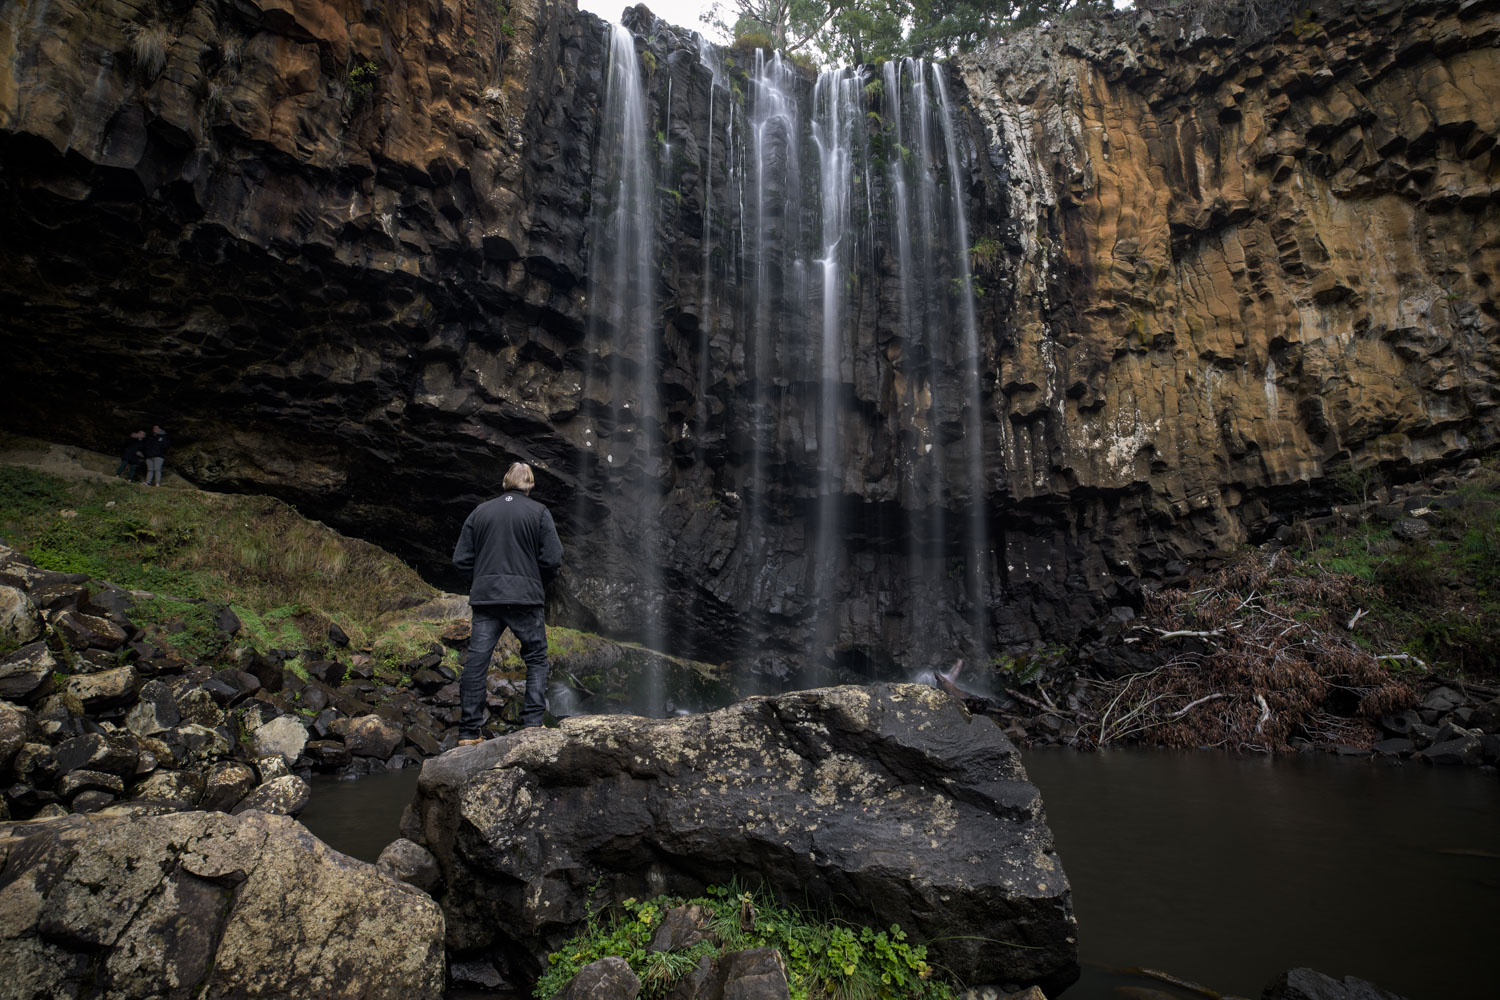 """""""The most devastation can be seen on the paths to and from the 'selfie rock' at the base of the falls. The grey stains on the rocks are remnants of the once thriving moss"""" - Graham Miles"""